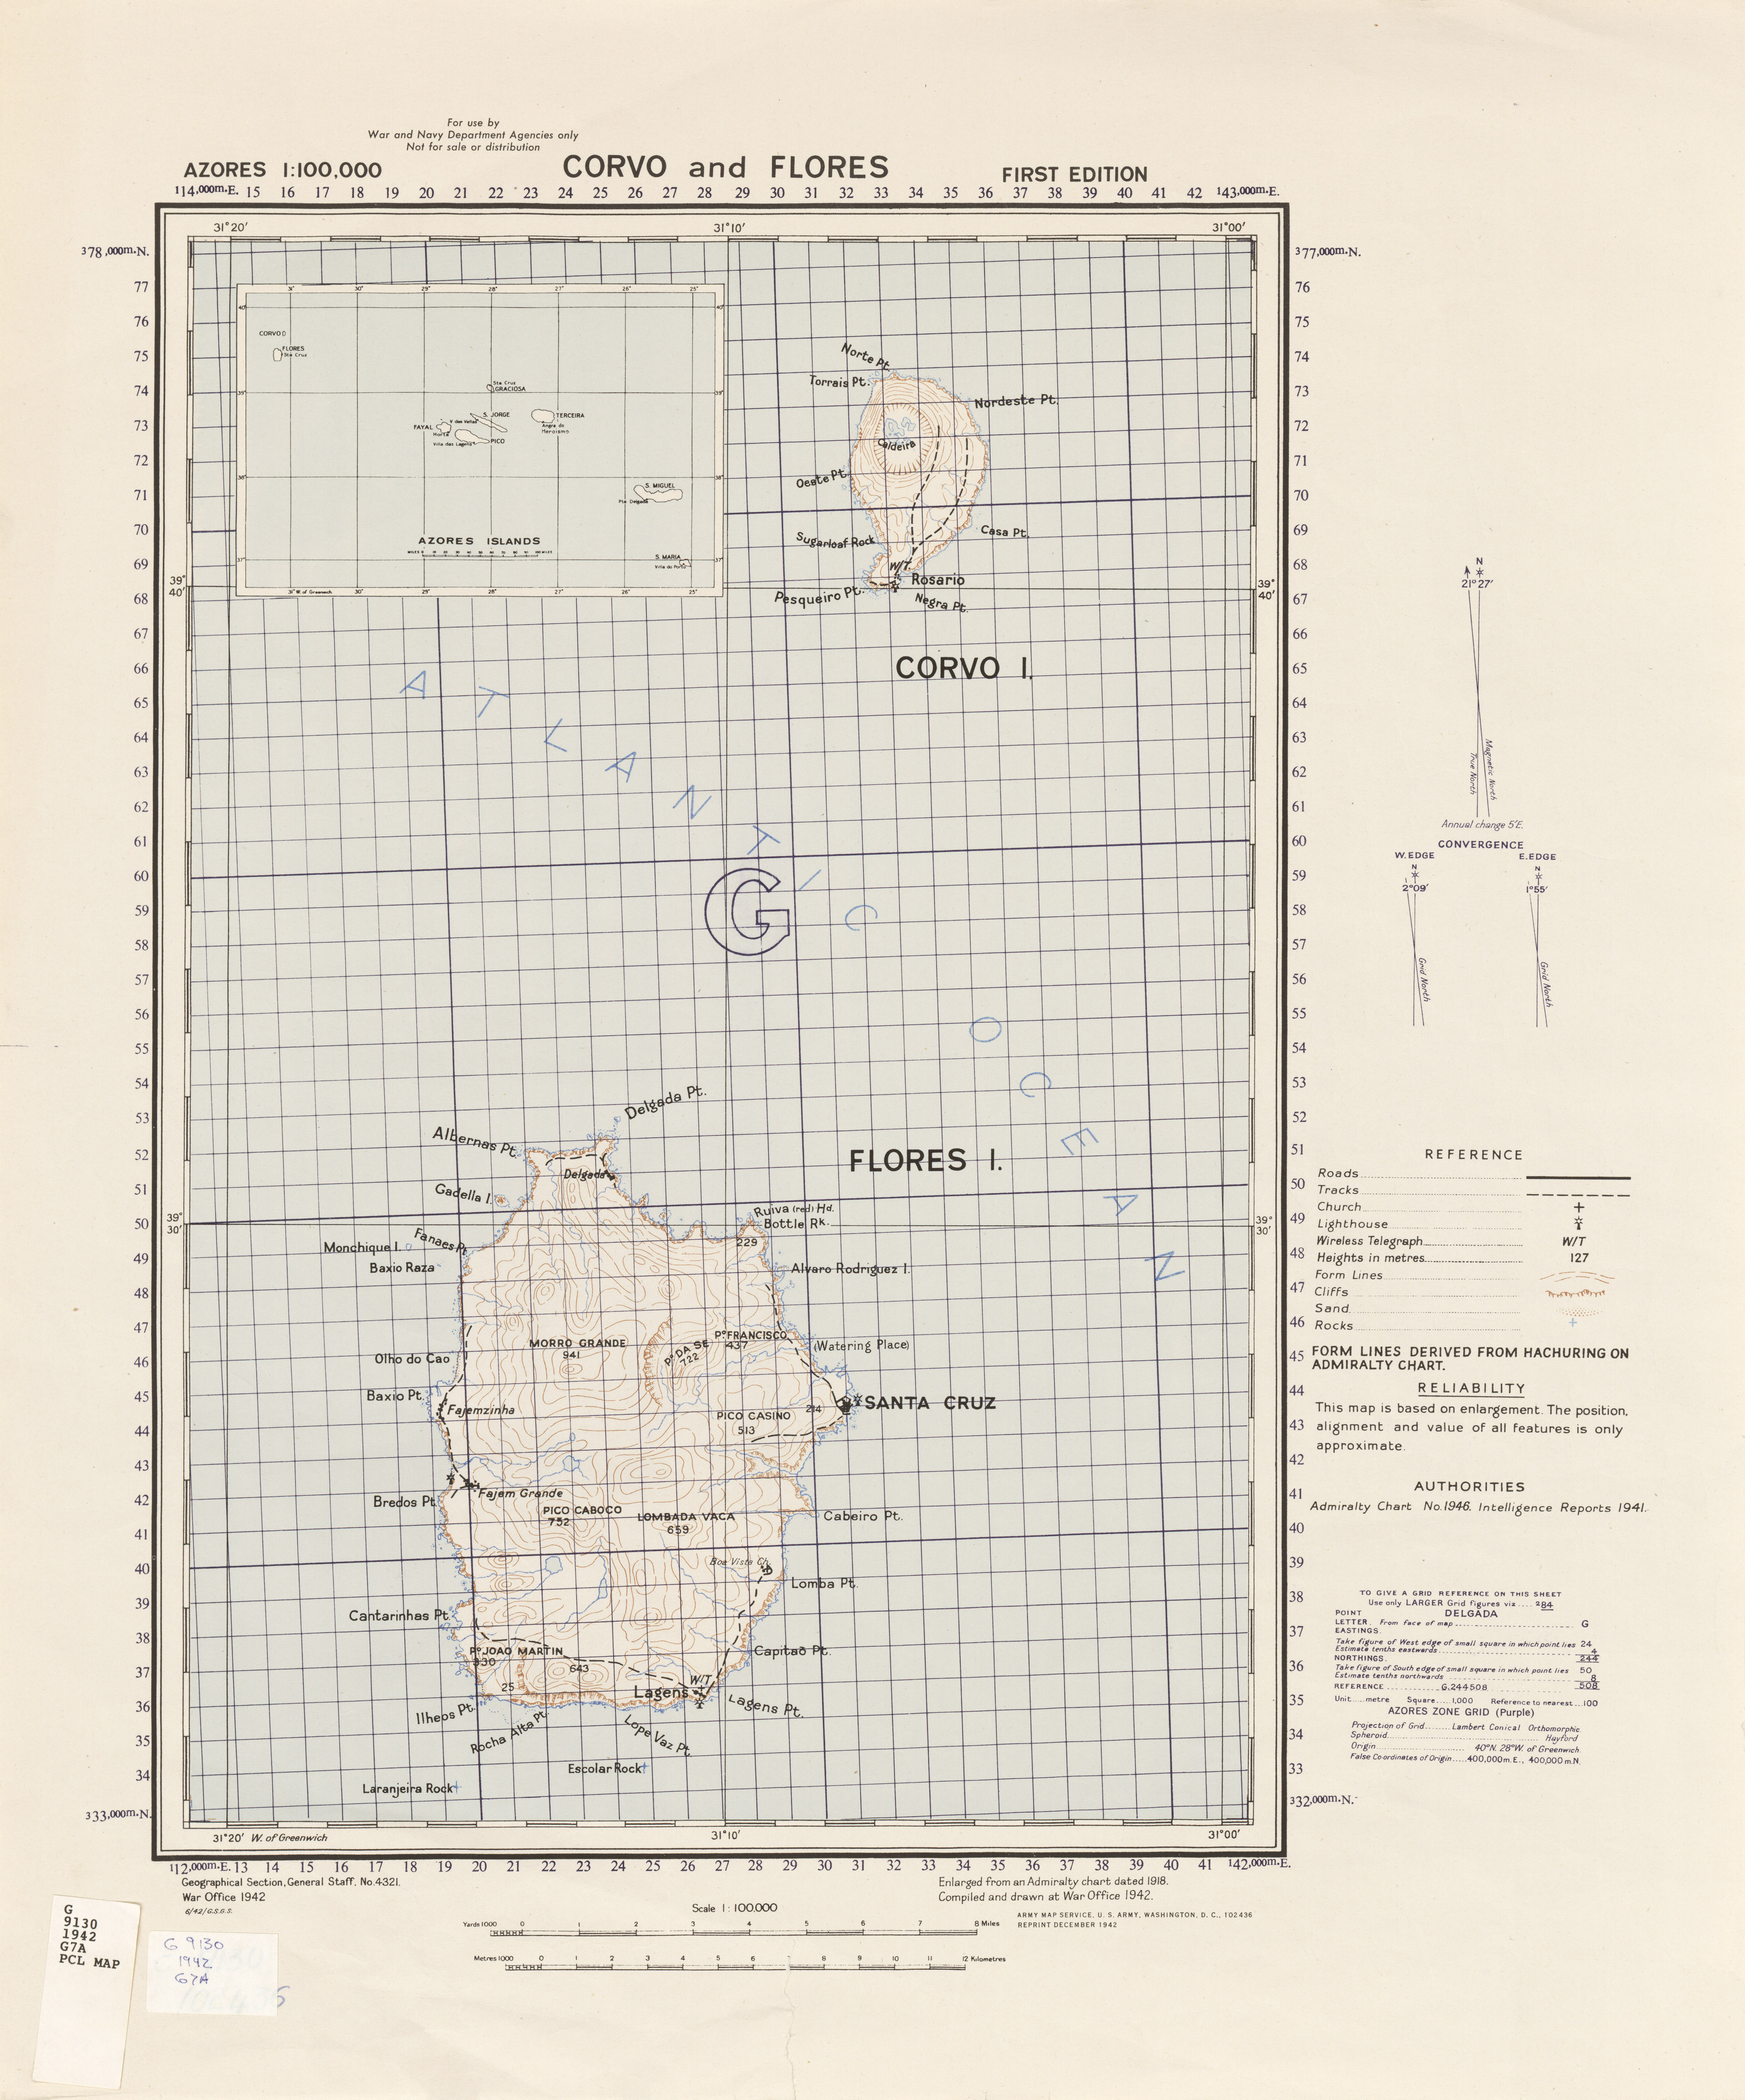 Army Map Service PerryCastañeda Map Collection UT Library Online - Us government map of mongolia 1 500000